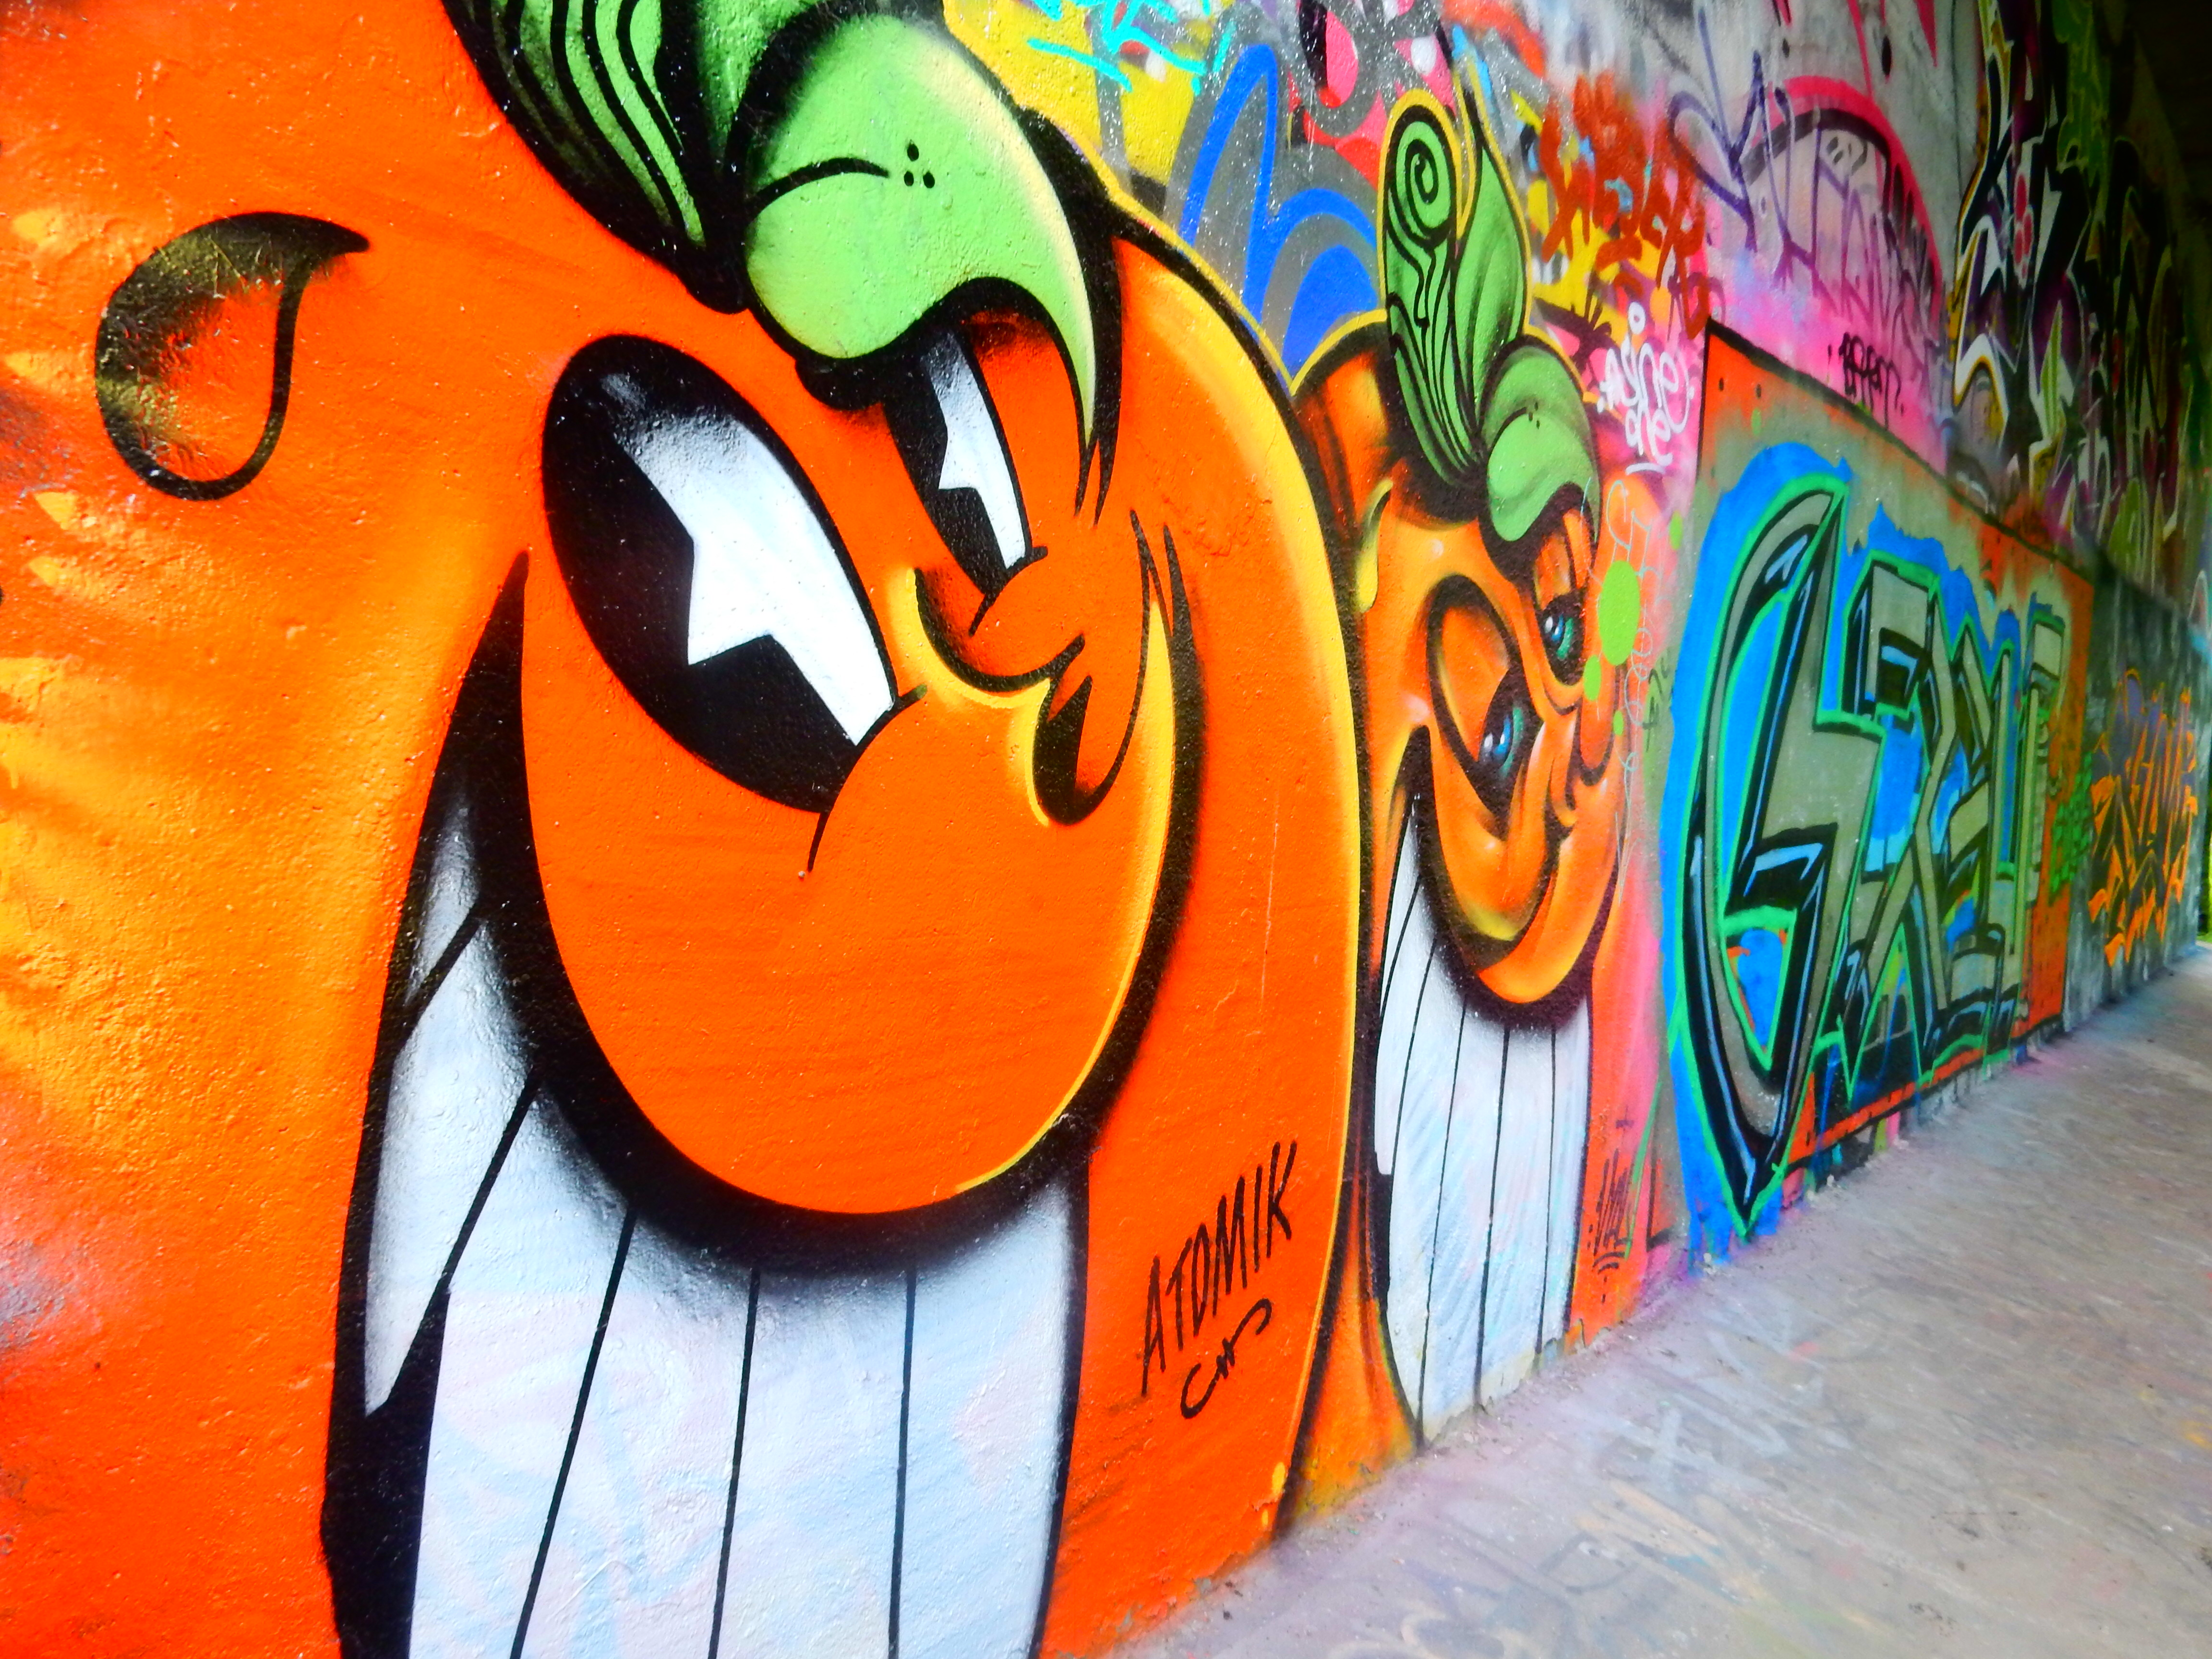 Graffiti wall amsterdam - Locals Told Me About A Legal Graffiti Park One Stop Away From Amsterdam Centraal It S Called Flevopark And Some Talented Artists Have Put Their Work On